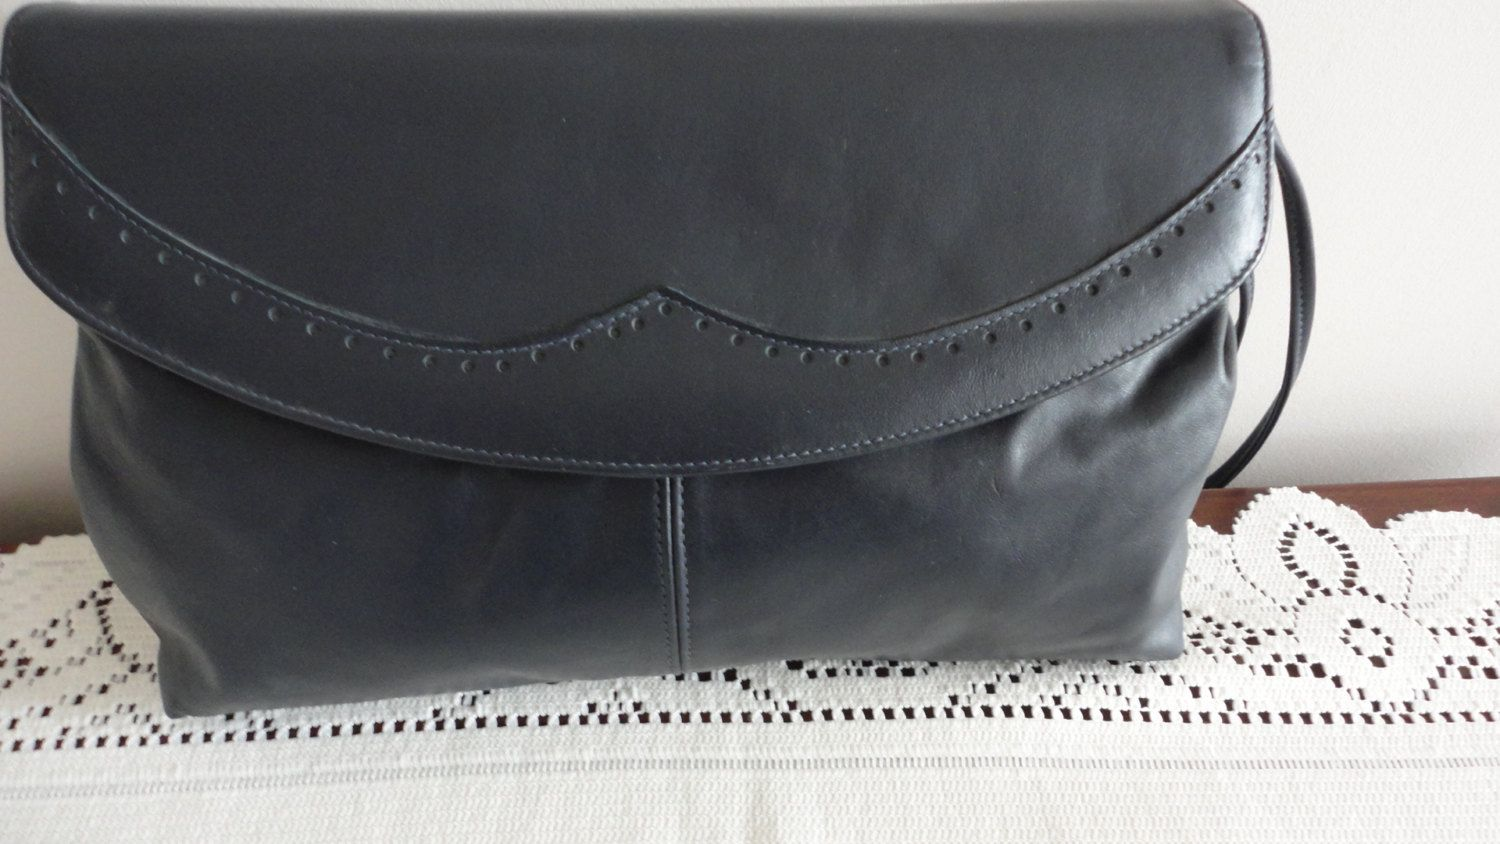 70s Navy Soft Leather Handbag Purse Mastercraft For Naturalizer Made In Canada By Loukiesworld On Etsy